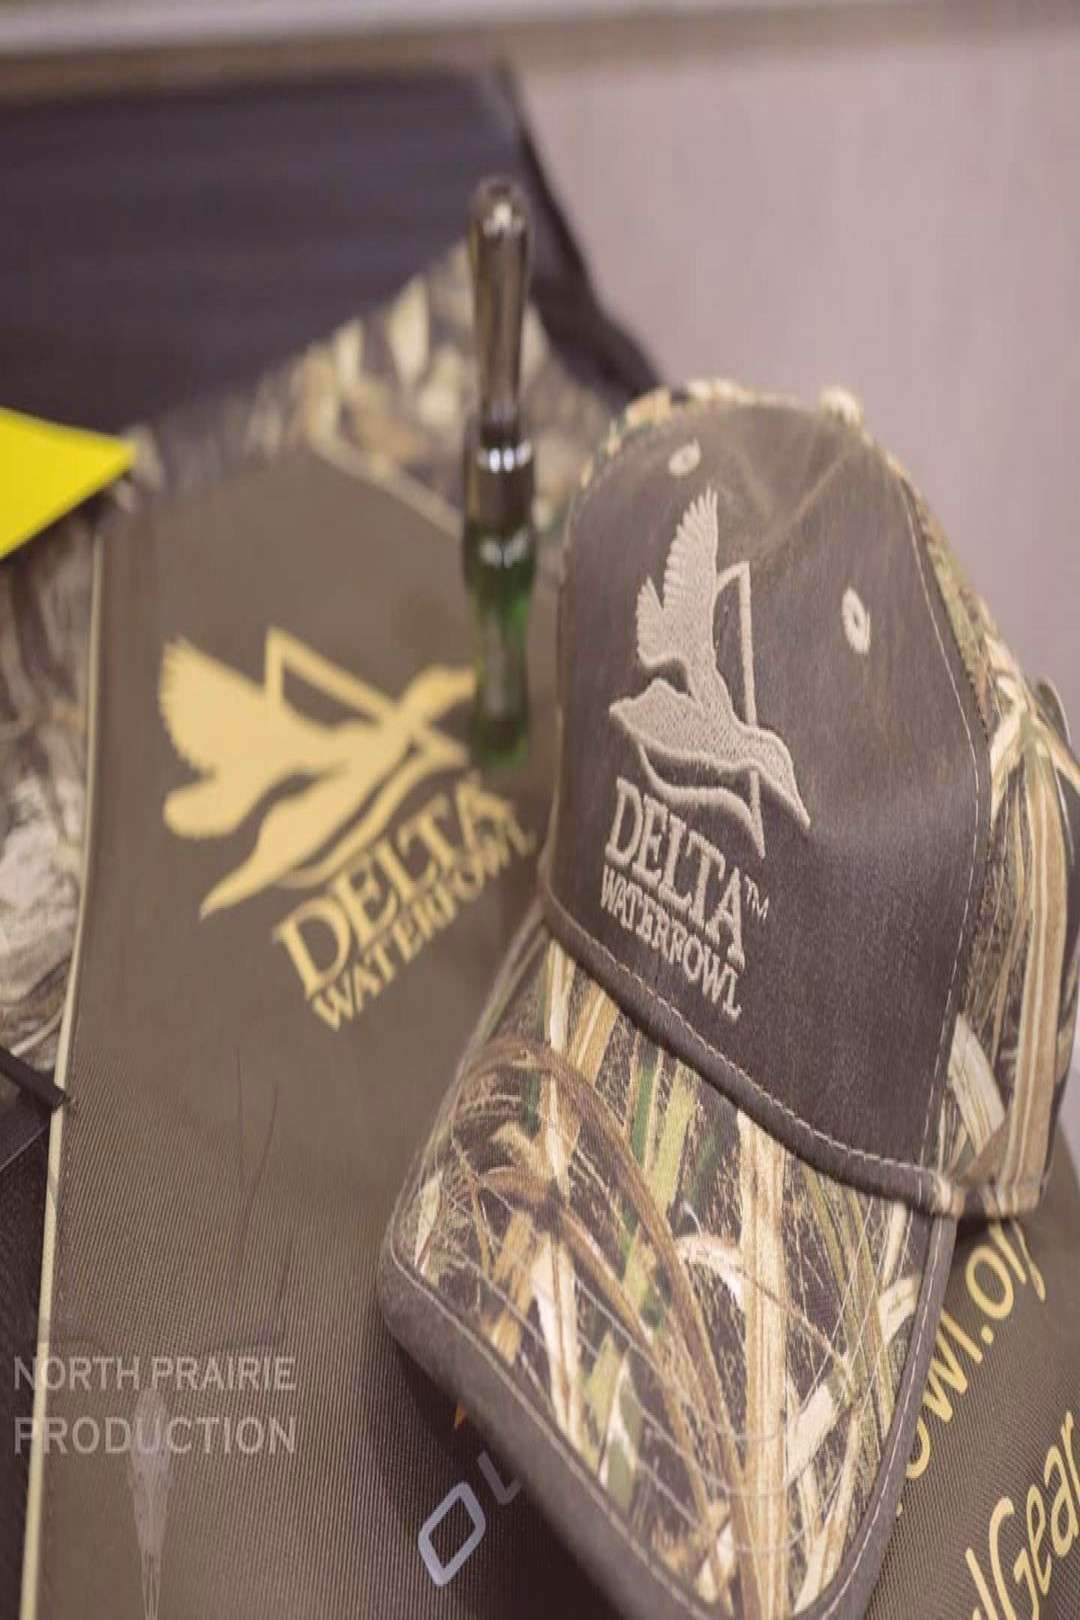 #waterfowl #tonights #banquet #people #shots #delta #from #more #few #one #and #hat #or #a A few shots from tonight's Delta Waterfowl banquet.You can find Elk hunting and more on our website.A few shots from tonight's Delta Waterfowl banquet.